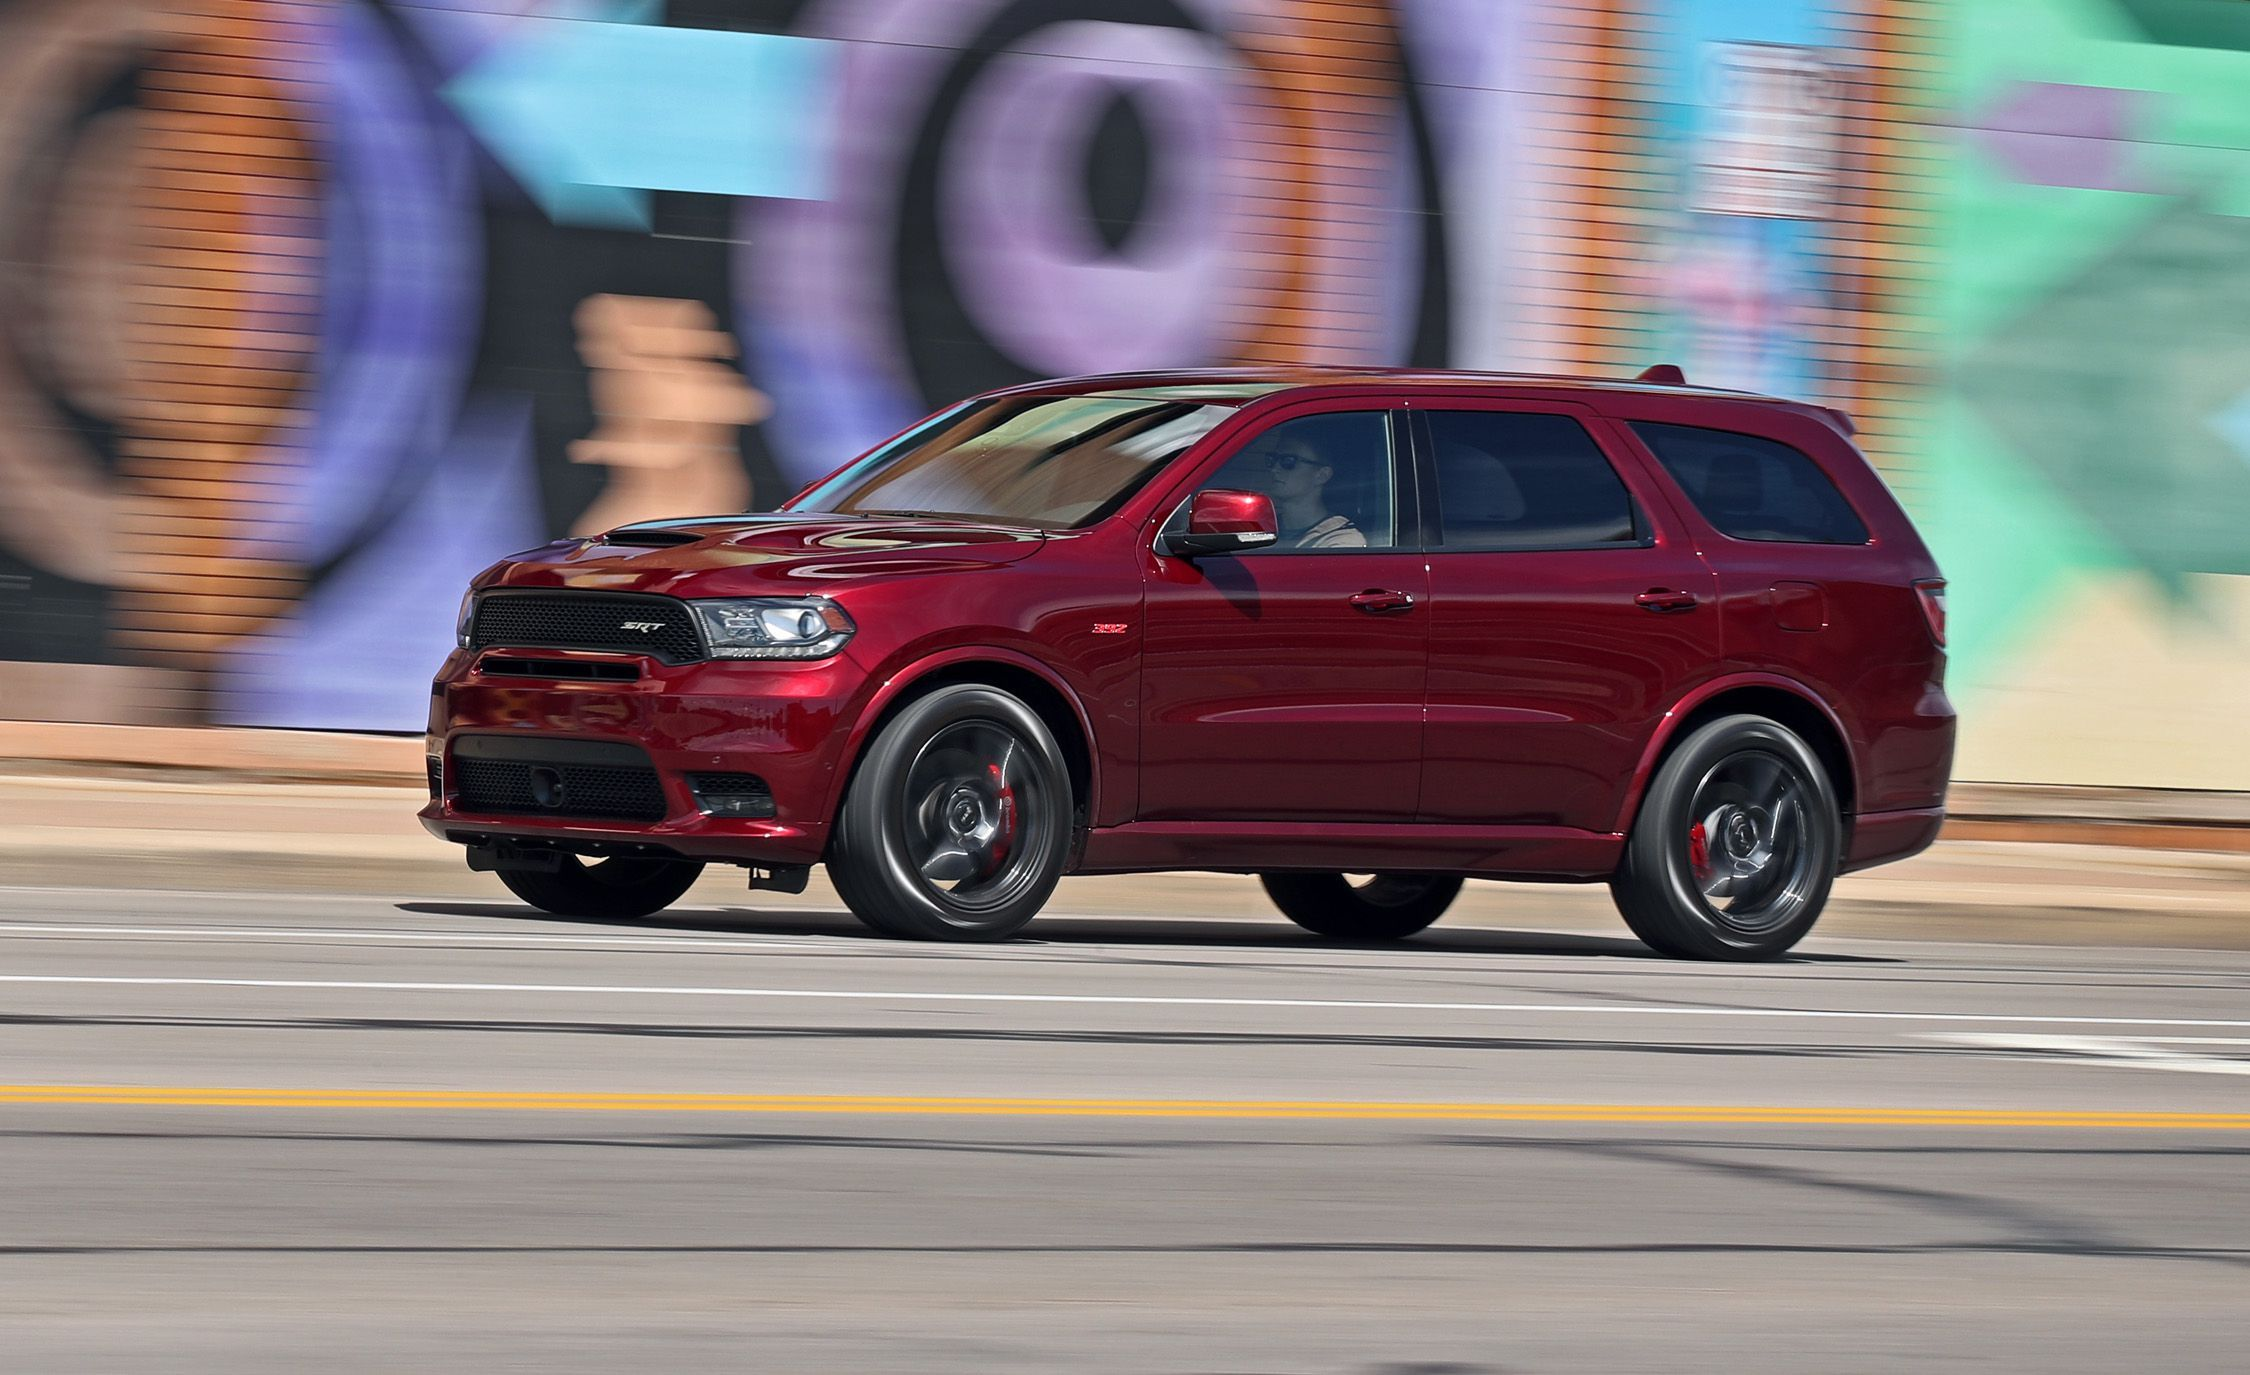 2019 Dodge Durango Srt Reviews Dodge Durango Srt Price Photos